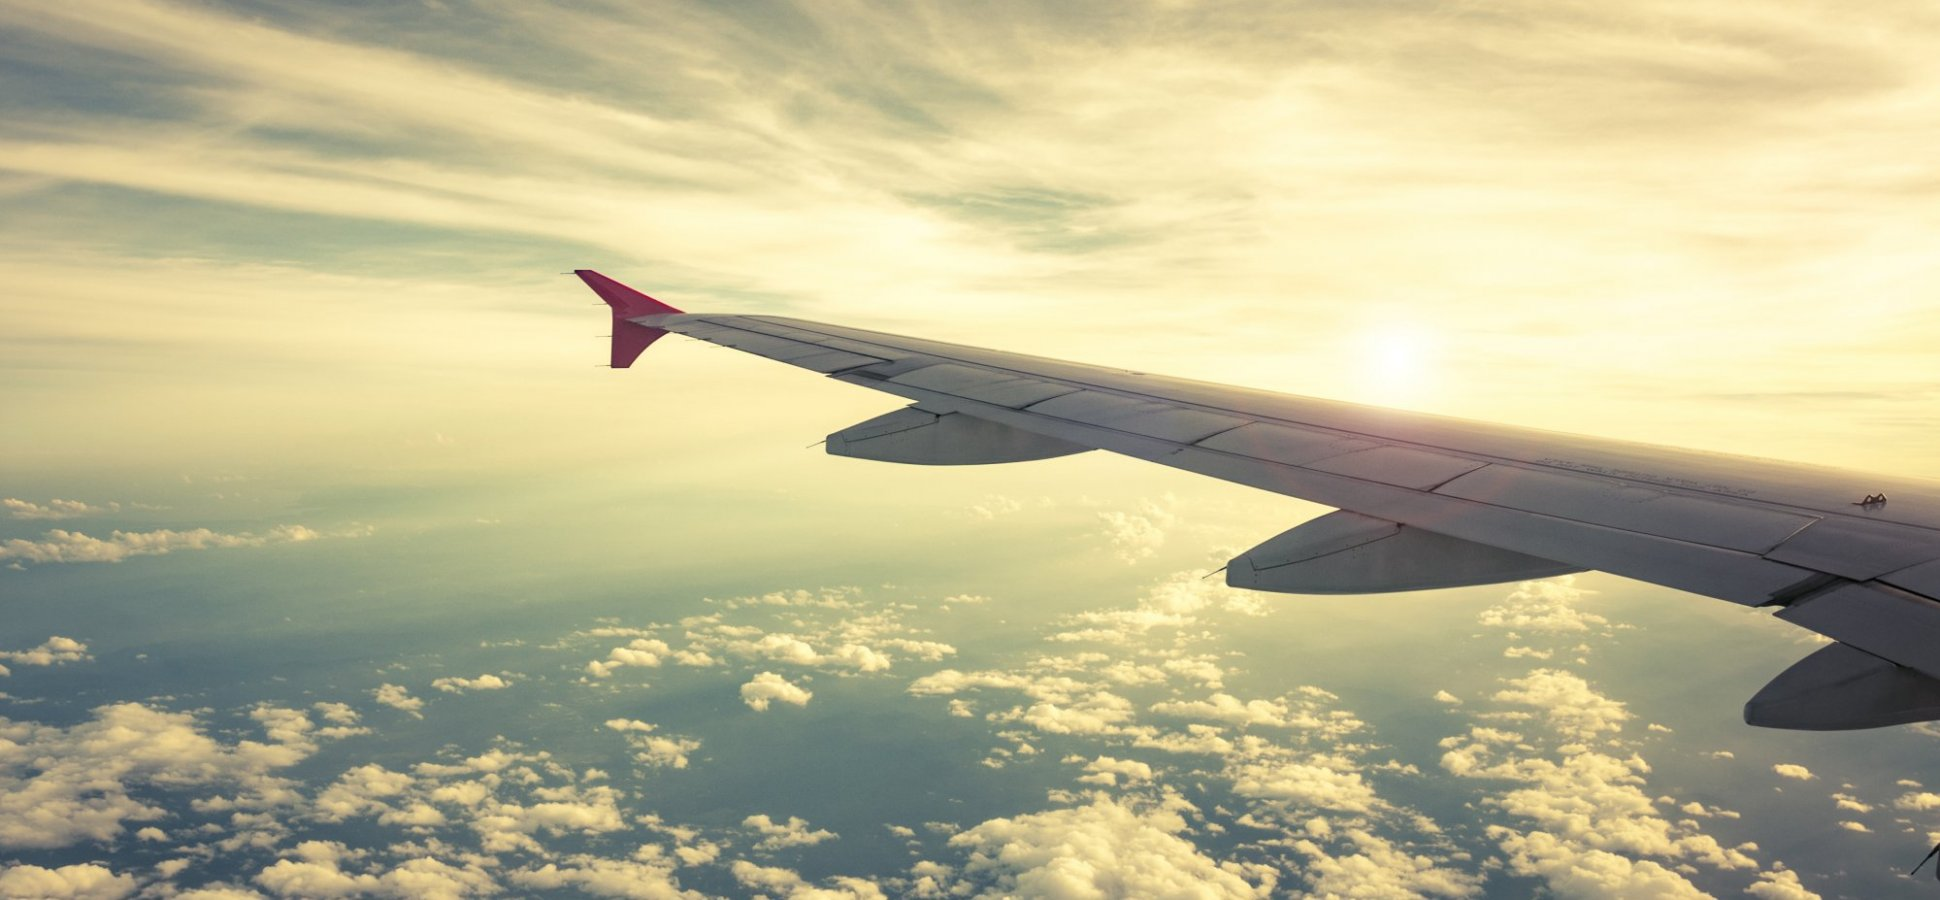 If You Spend a Lot of Time in the Air, Here Are 5 Ways to Stay Productive